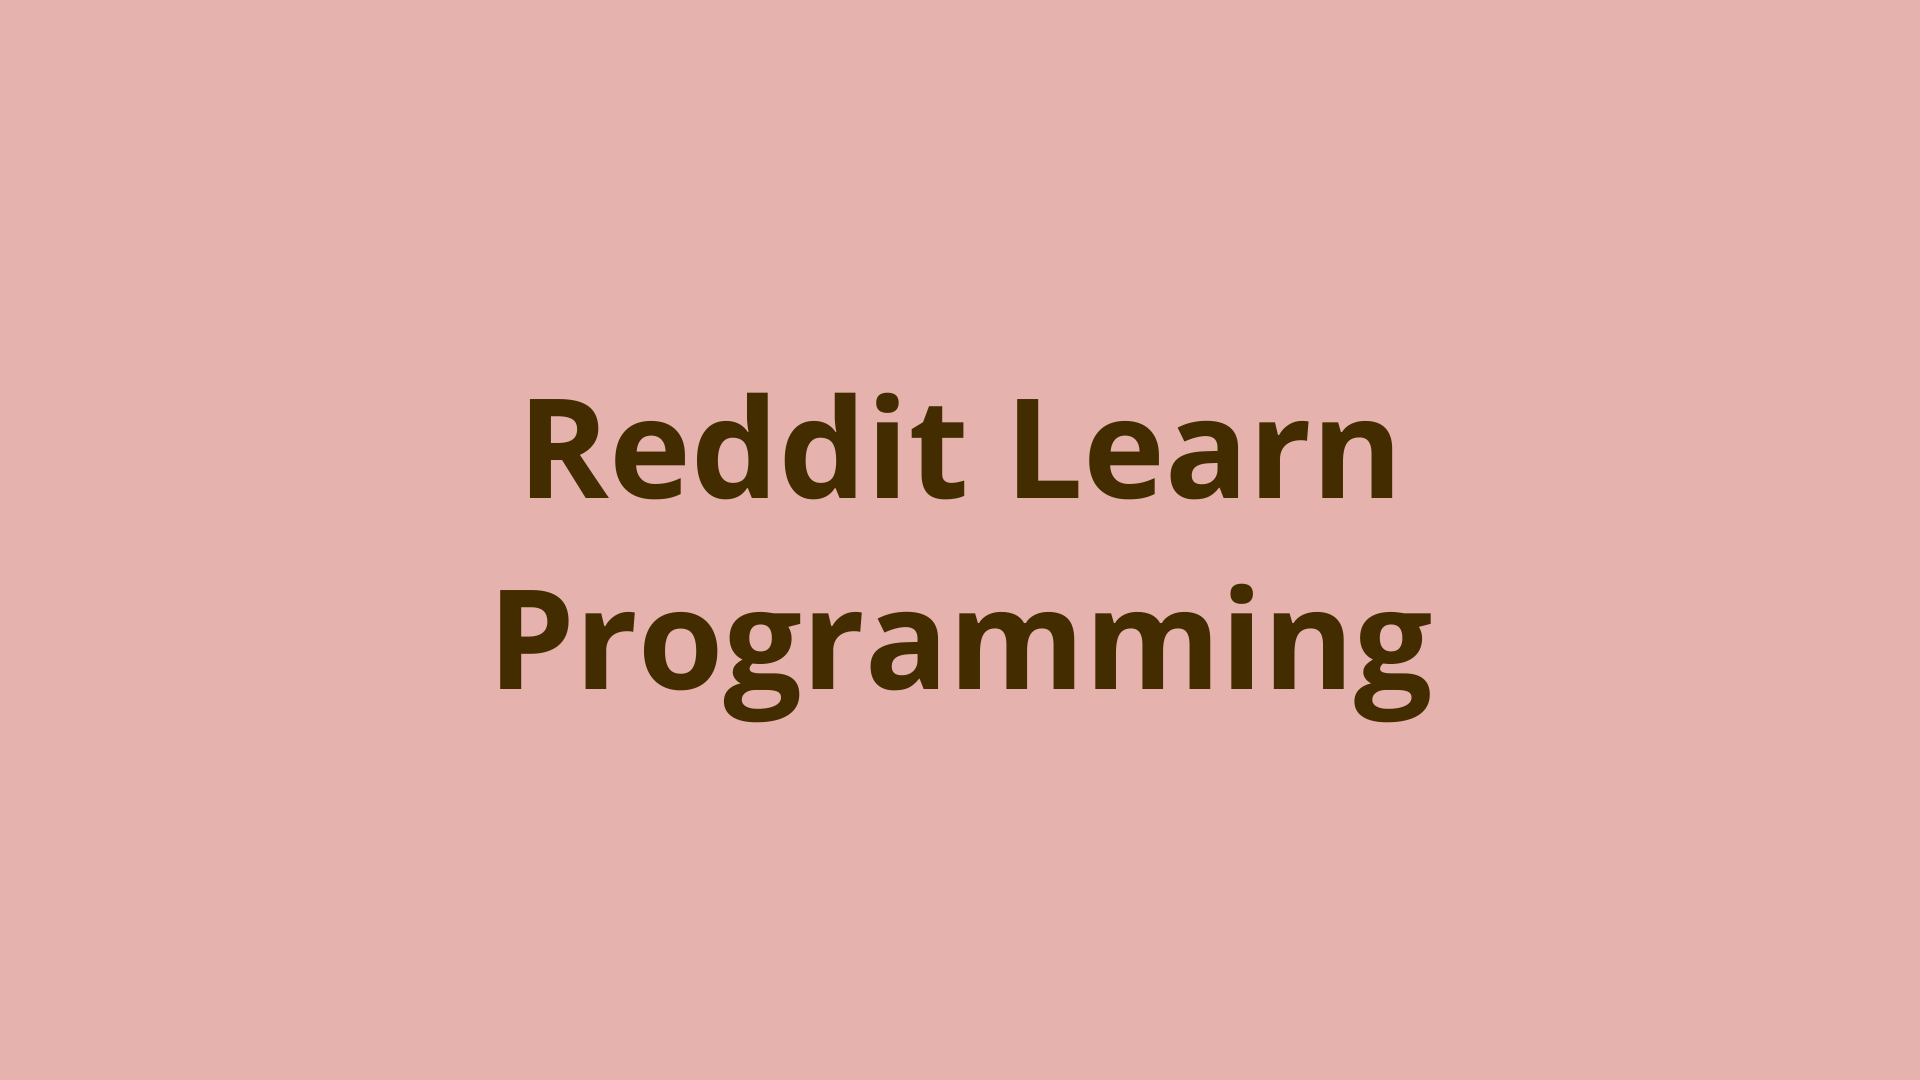 Image of Reddit Learn Programming